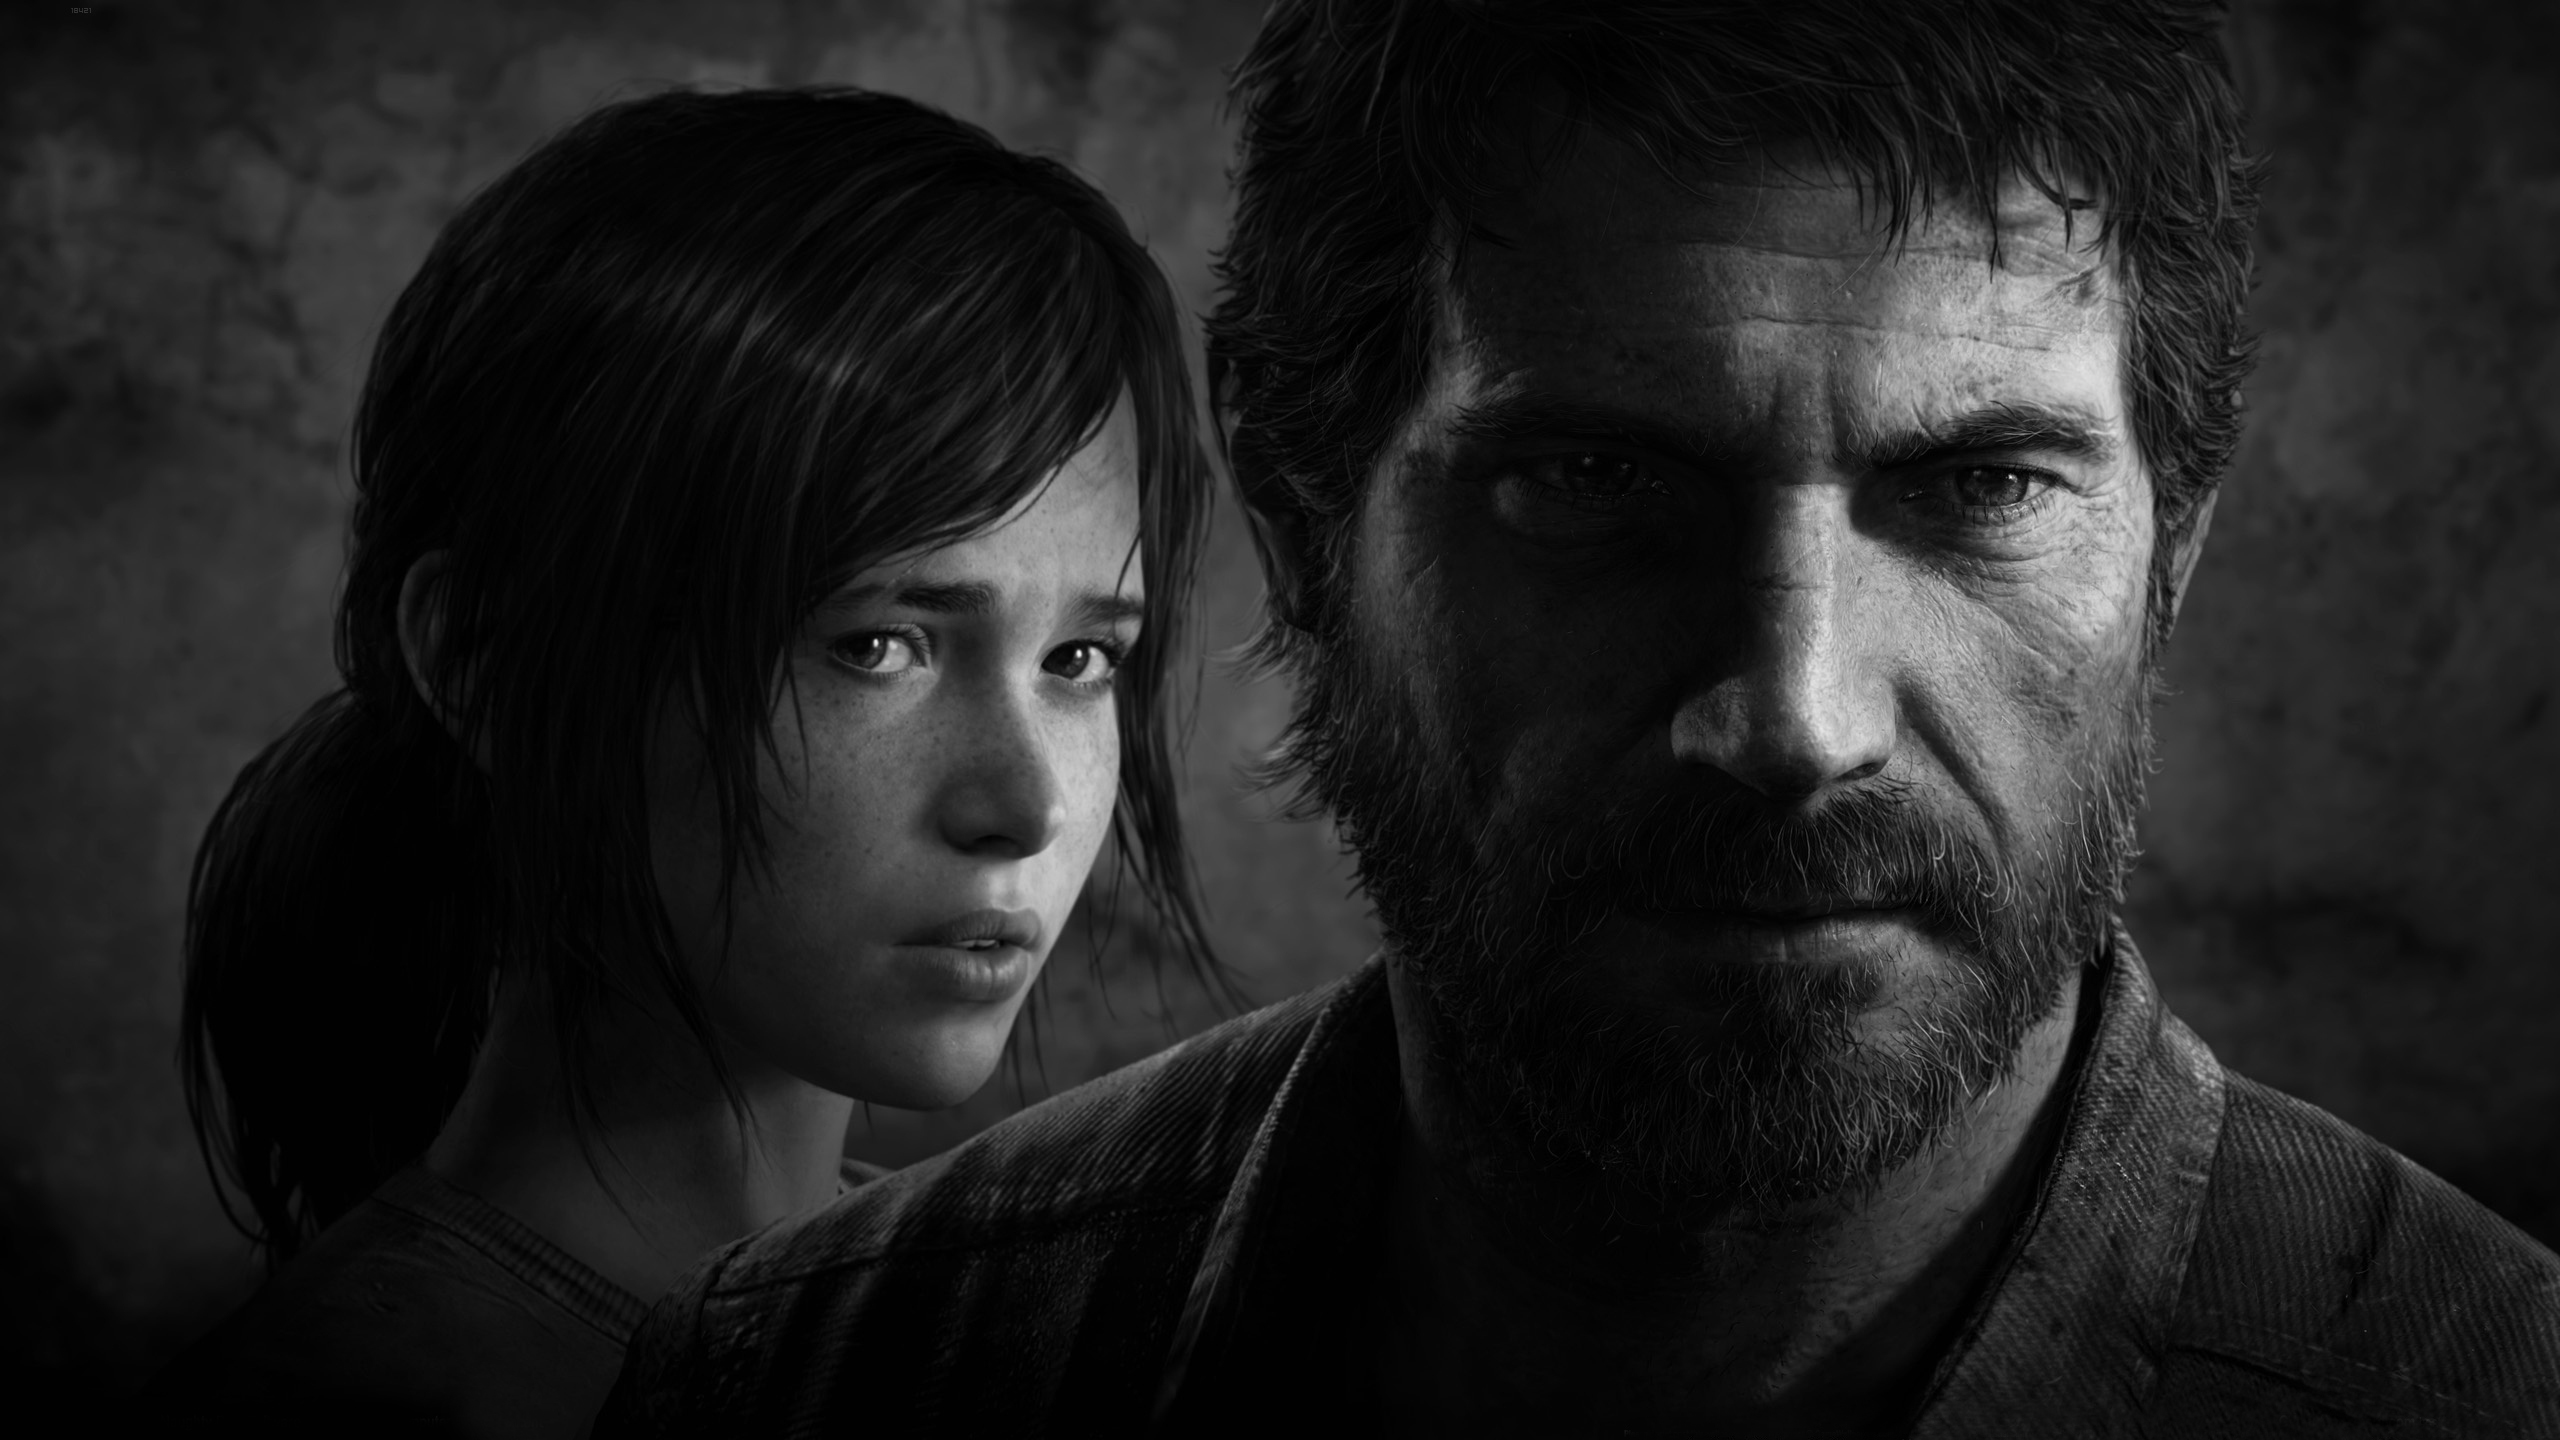 The last of us hd wallpaper background image 2560x1440 id 271595 wallpaper abyss - The last of us wallpaper ...